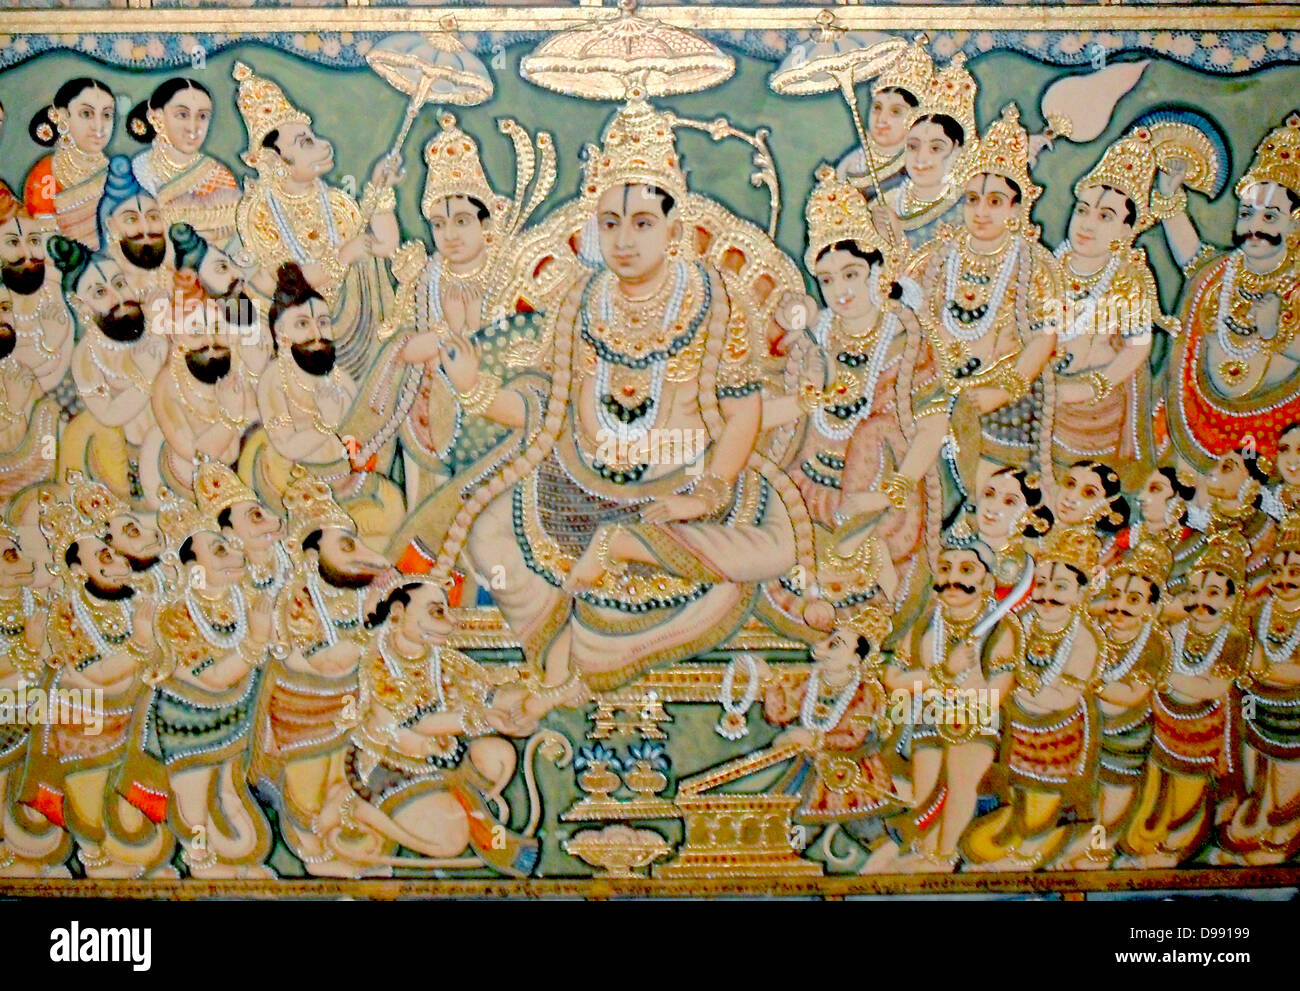 Detail from a 19th century enamel and glazed picture depicting the Hindu legend of the Ramayana. The Ramayana is - Stock Image